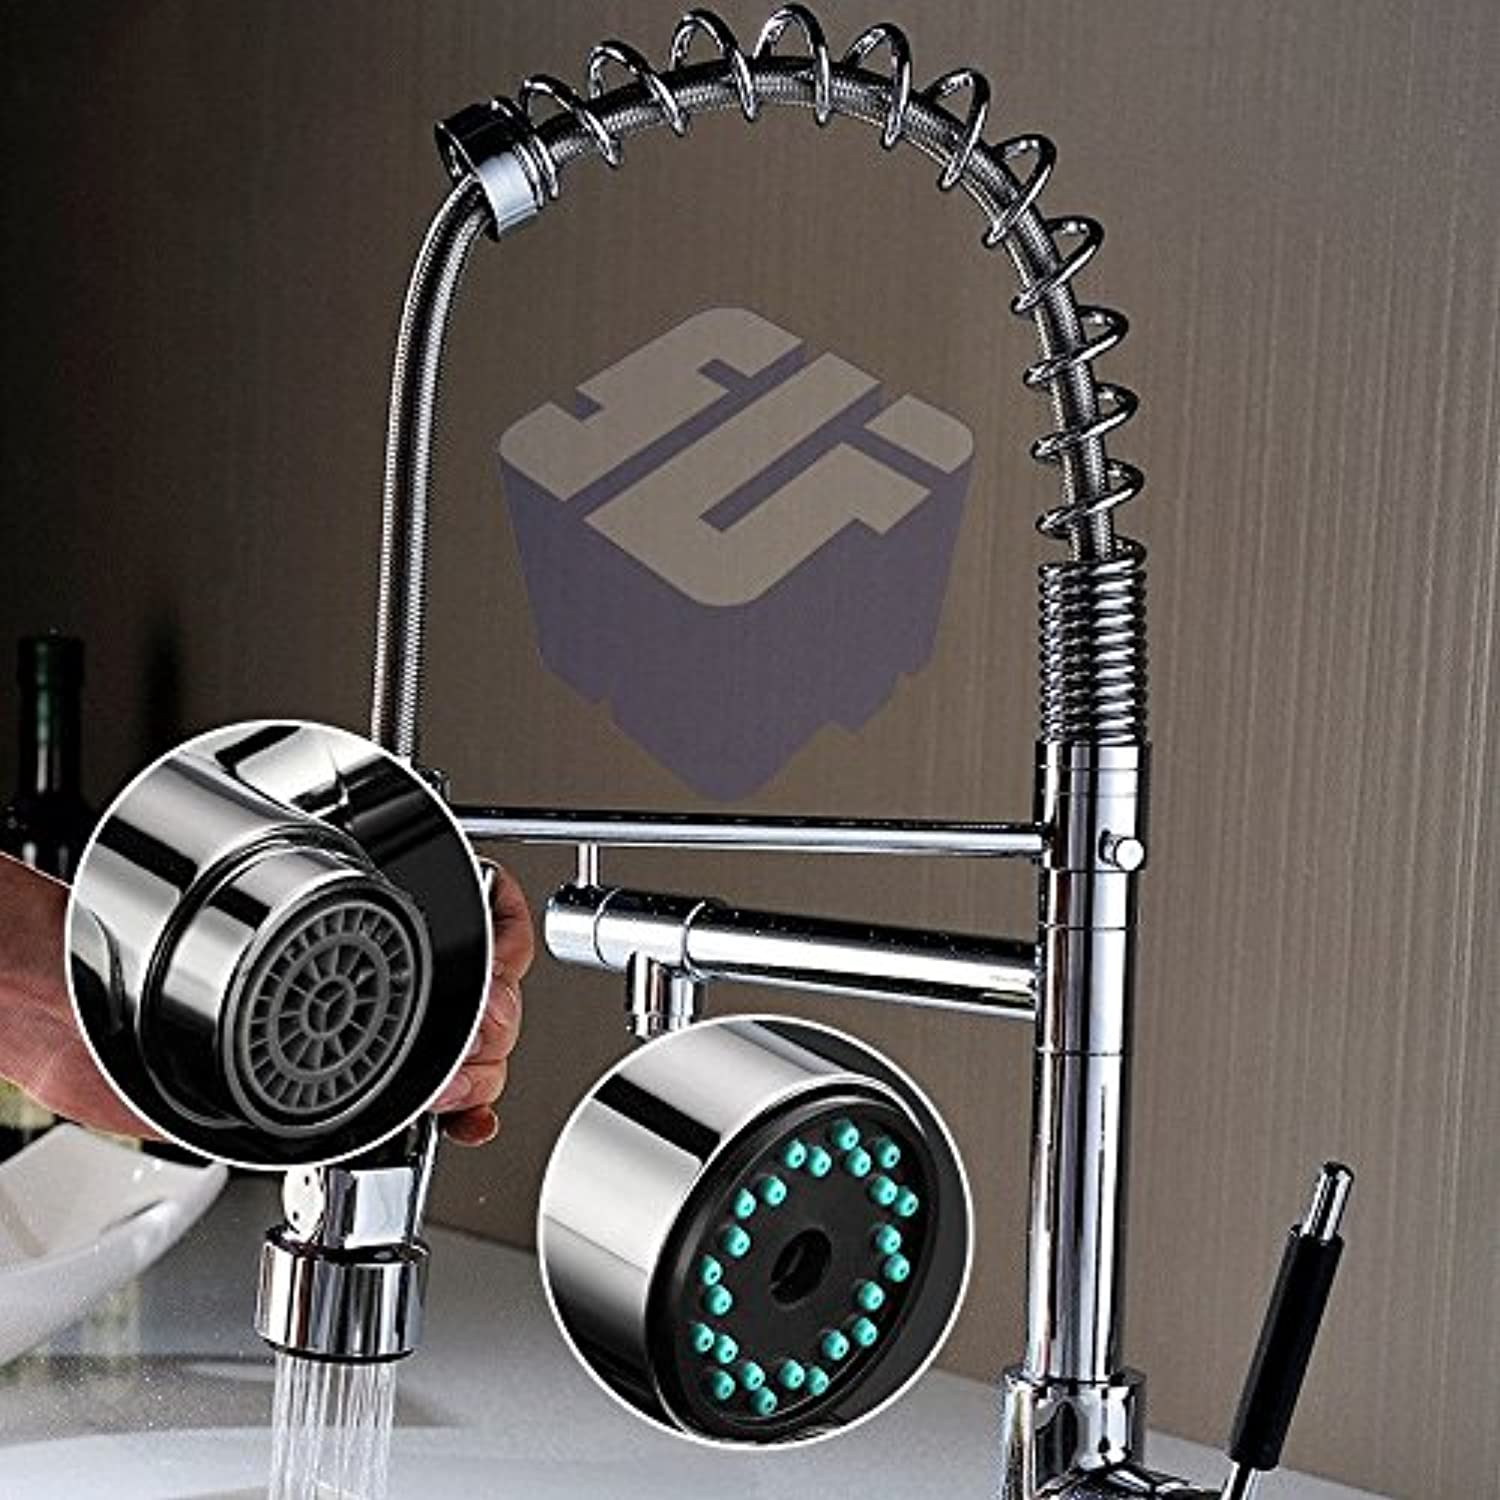 Lalaky Taps Faucet Kitchen Mixer Sink Waterfall Bathroom Mixer Basin Mixer Tap for Kitchen Bathroom and Washroom Copper Hot and Cold Single Hole redating Pull